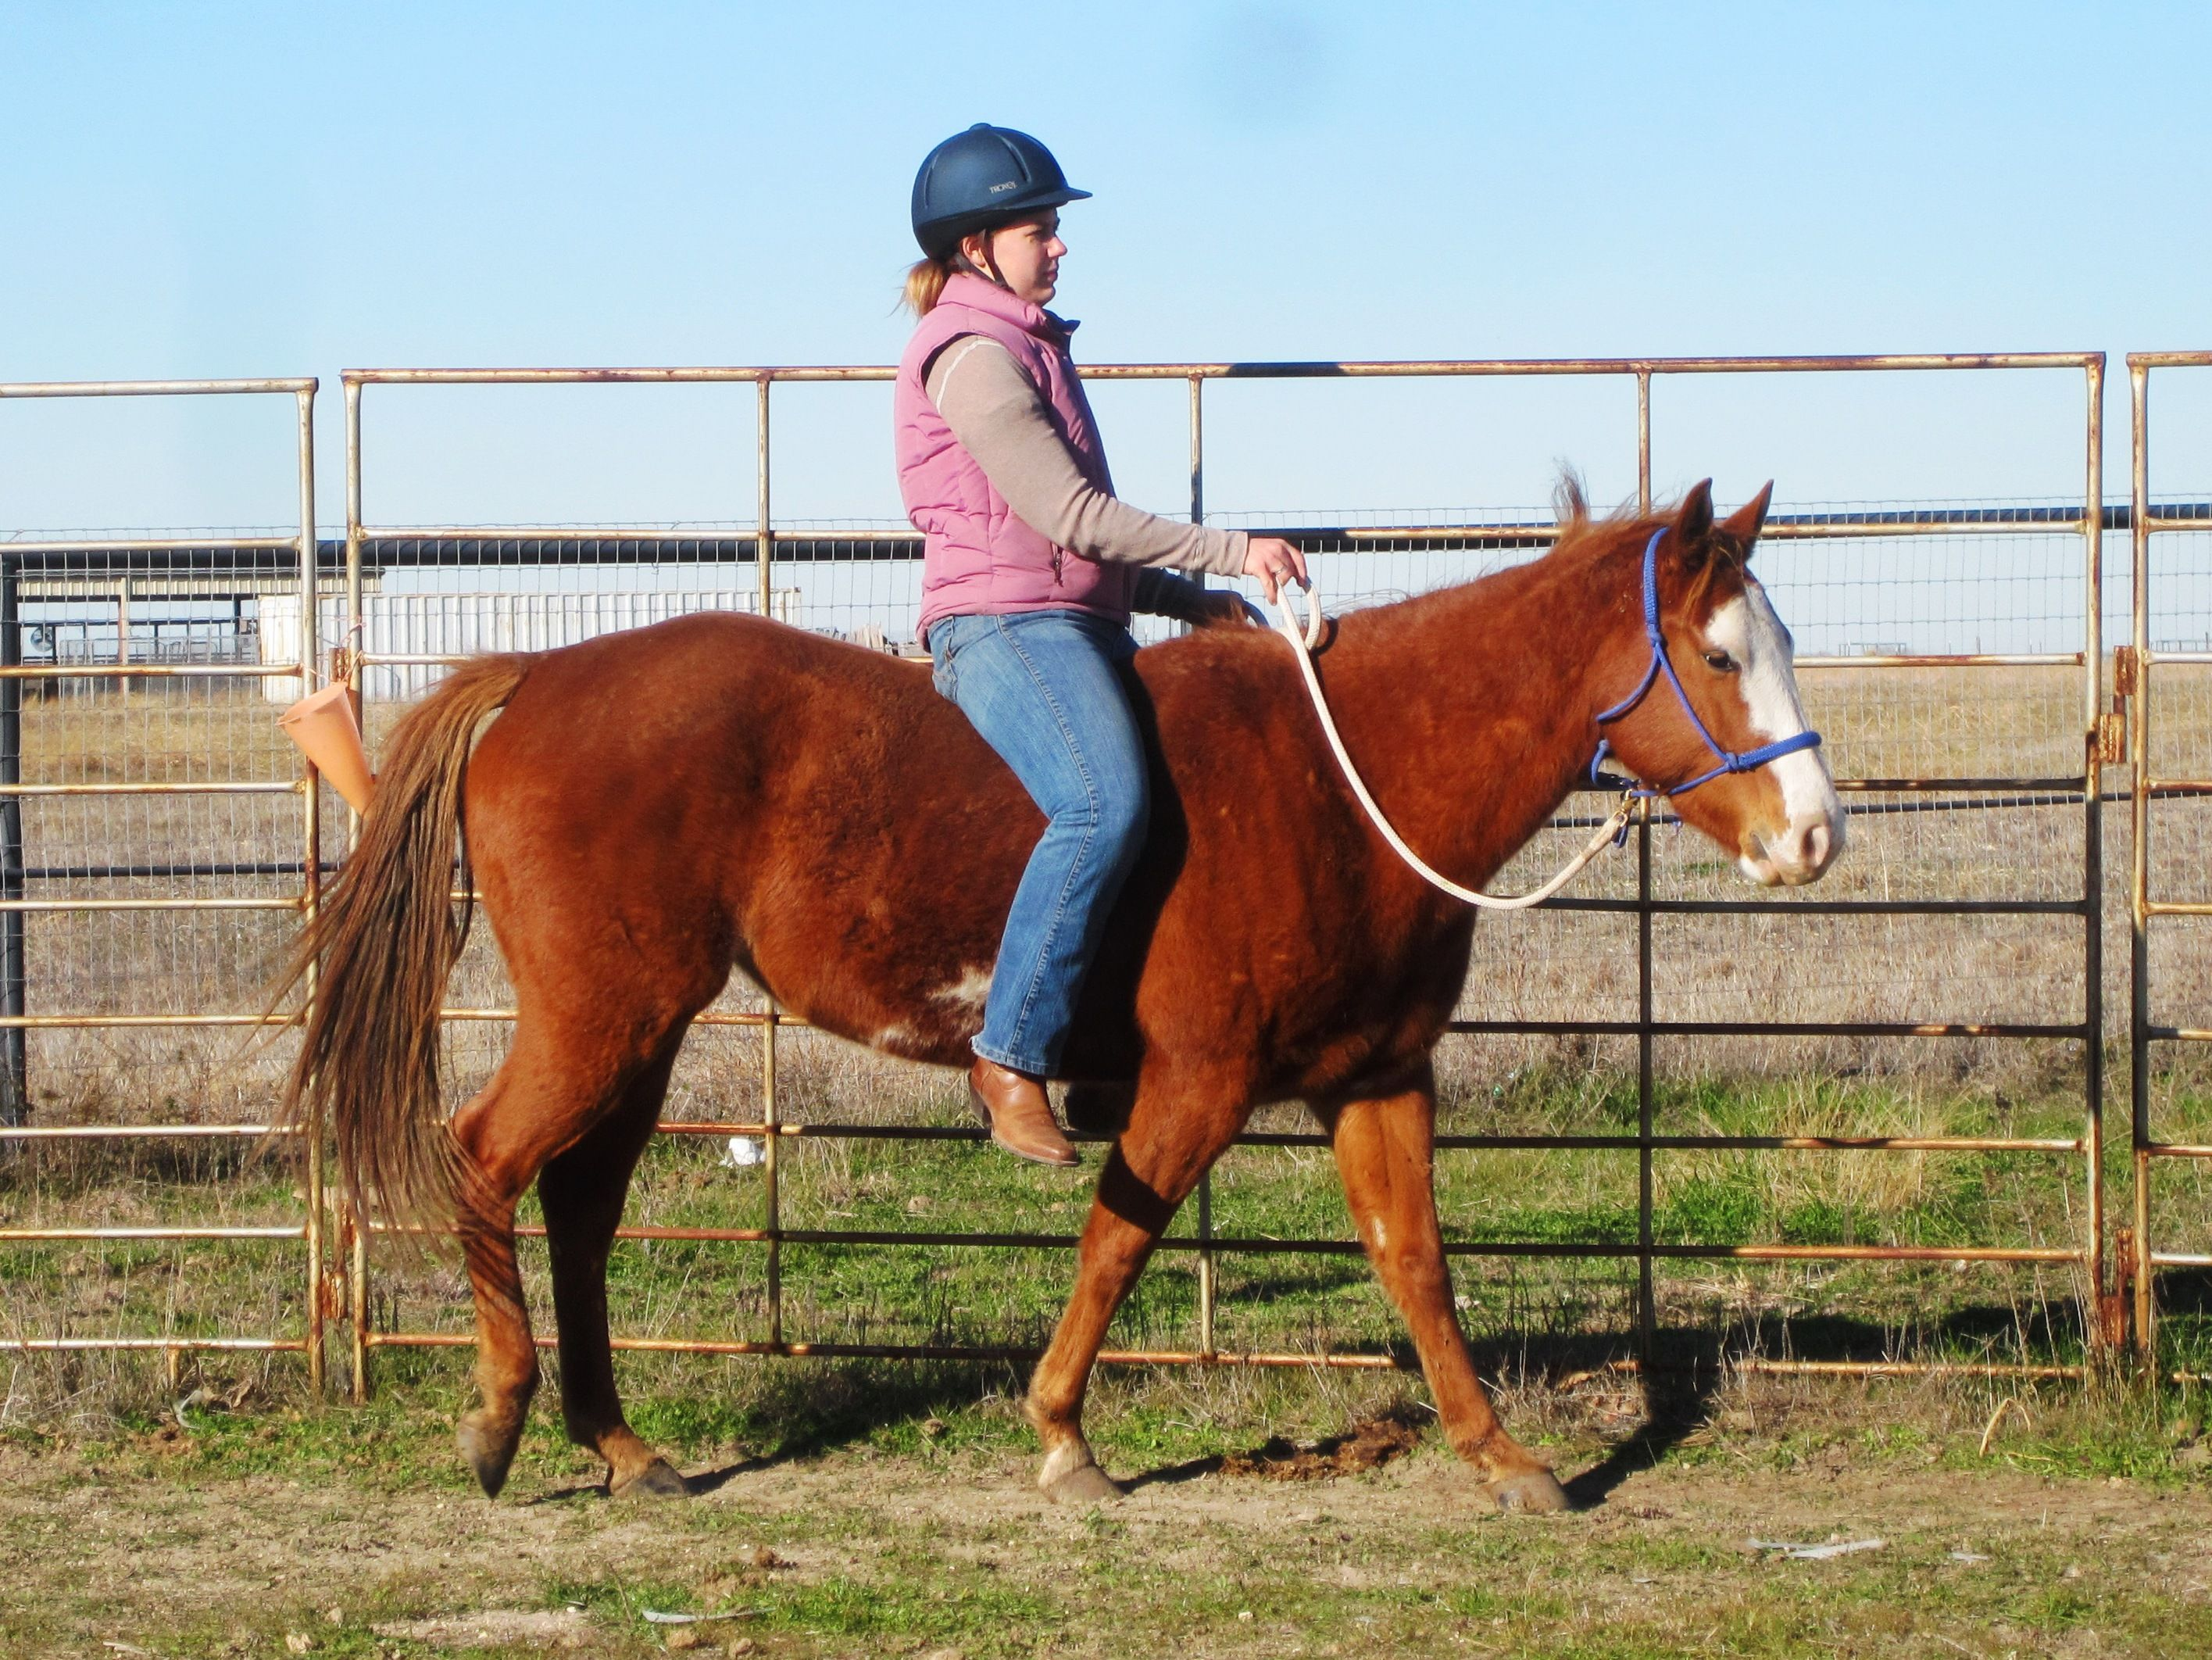 person riding a horse - Google Search   Pencey   Pinterest